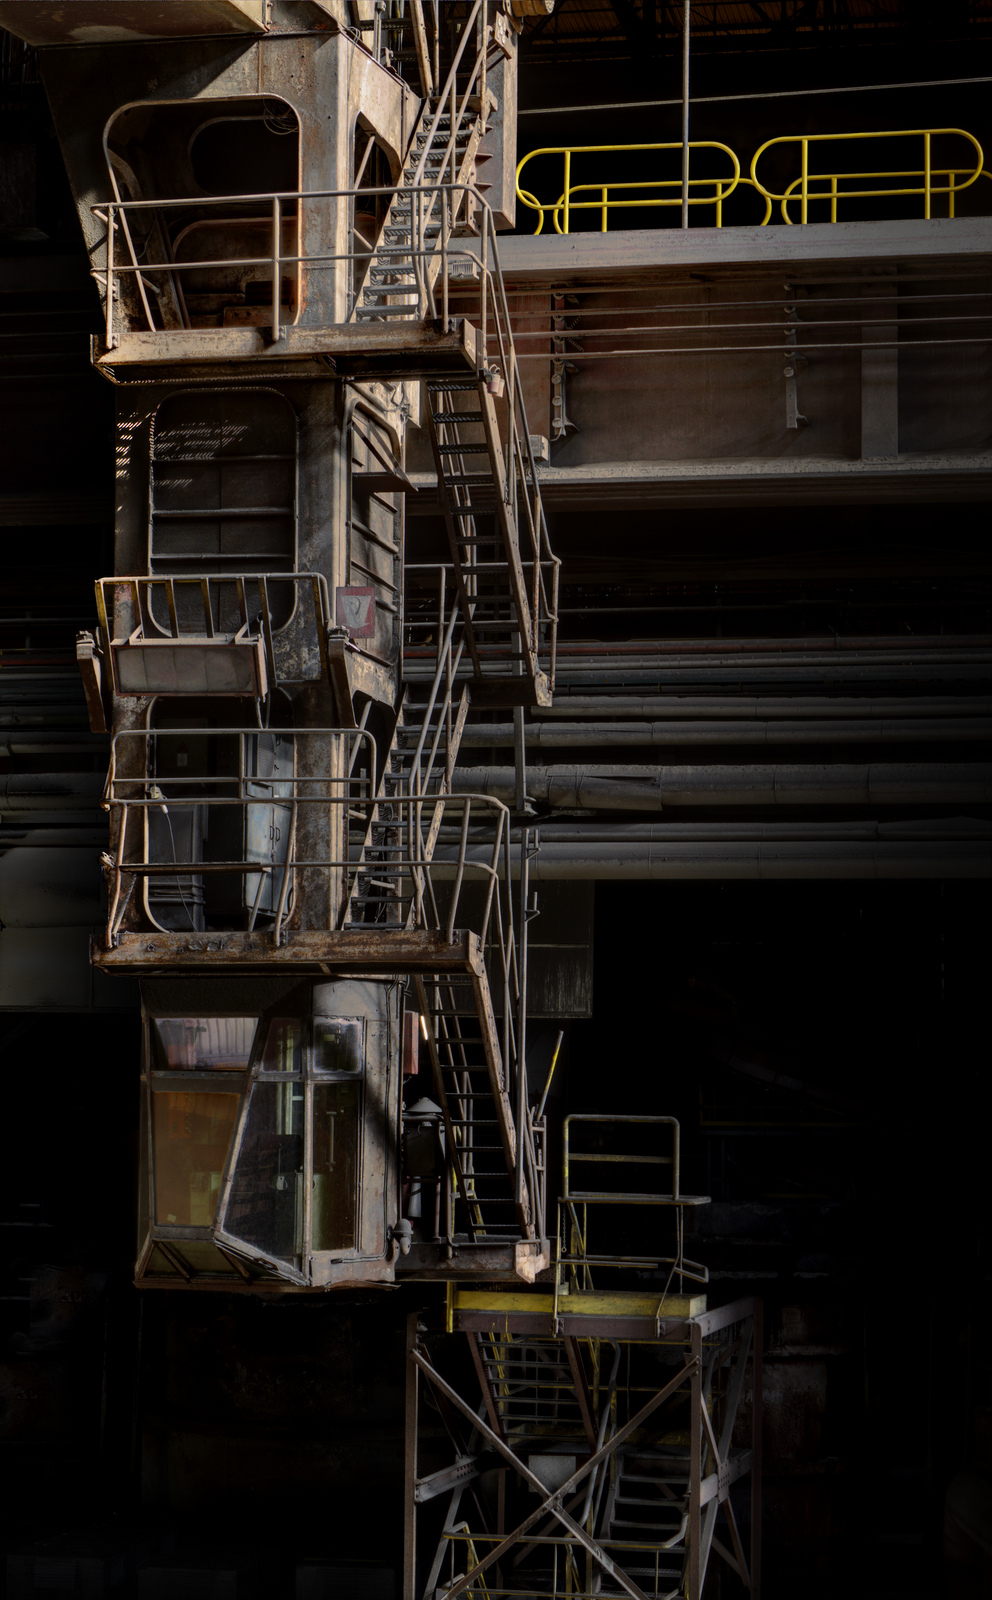 Steel work stairs. Photograph by Forgotten Heritage Photography. Used with permission.